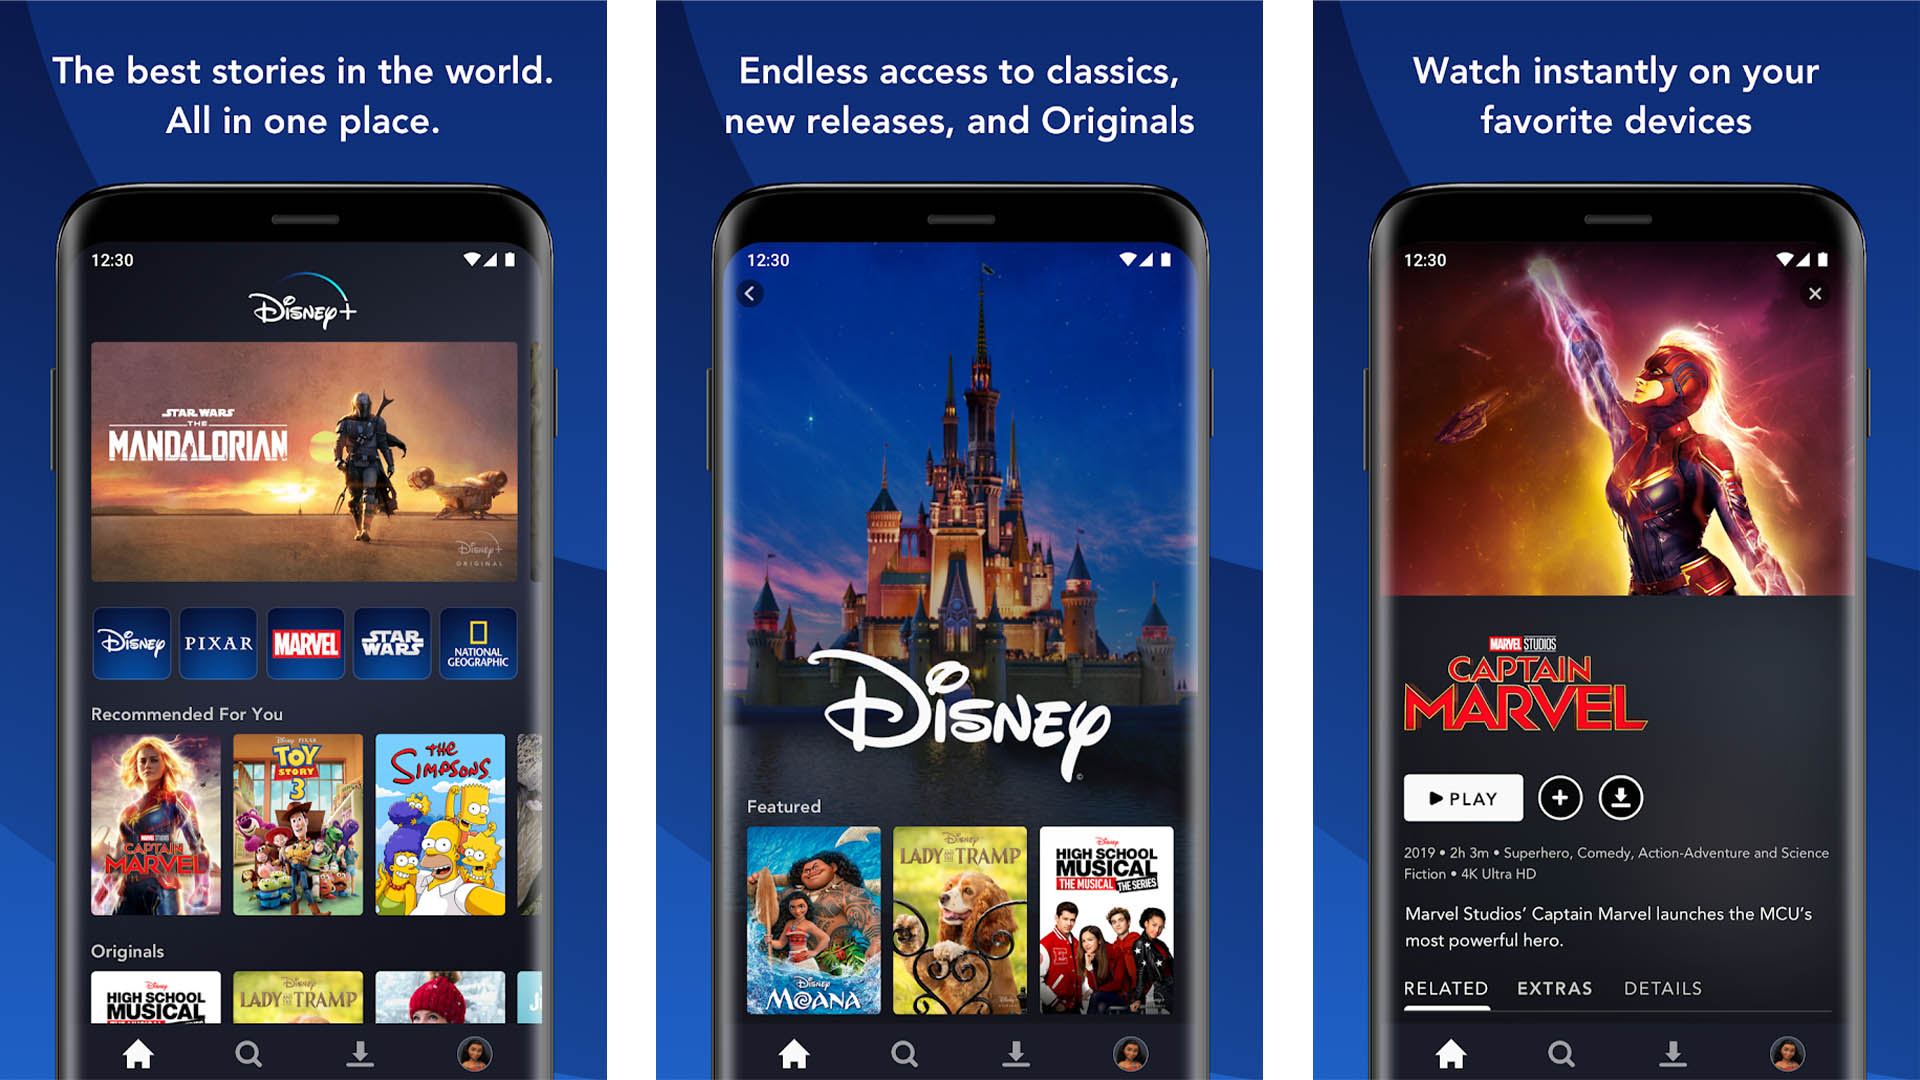 Disney Plus screenshot for the best new android apps